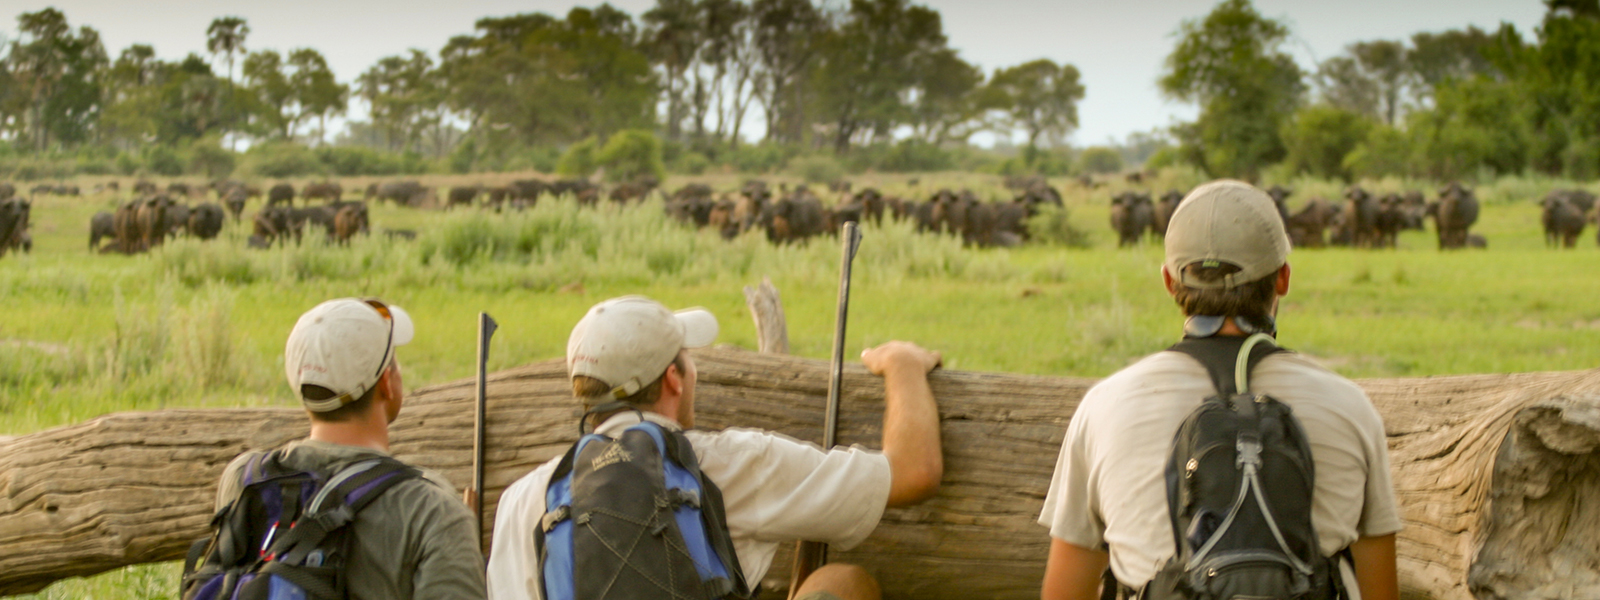 Field guide courses by the African Guide Academy